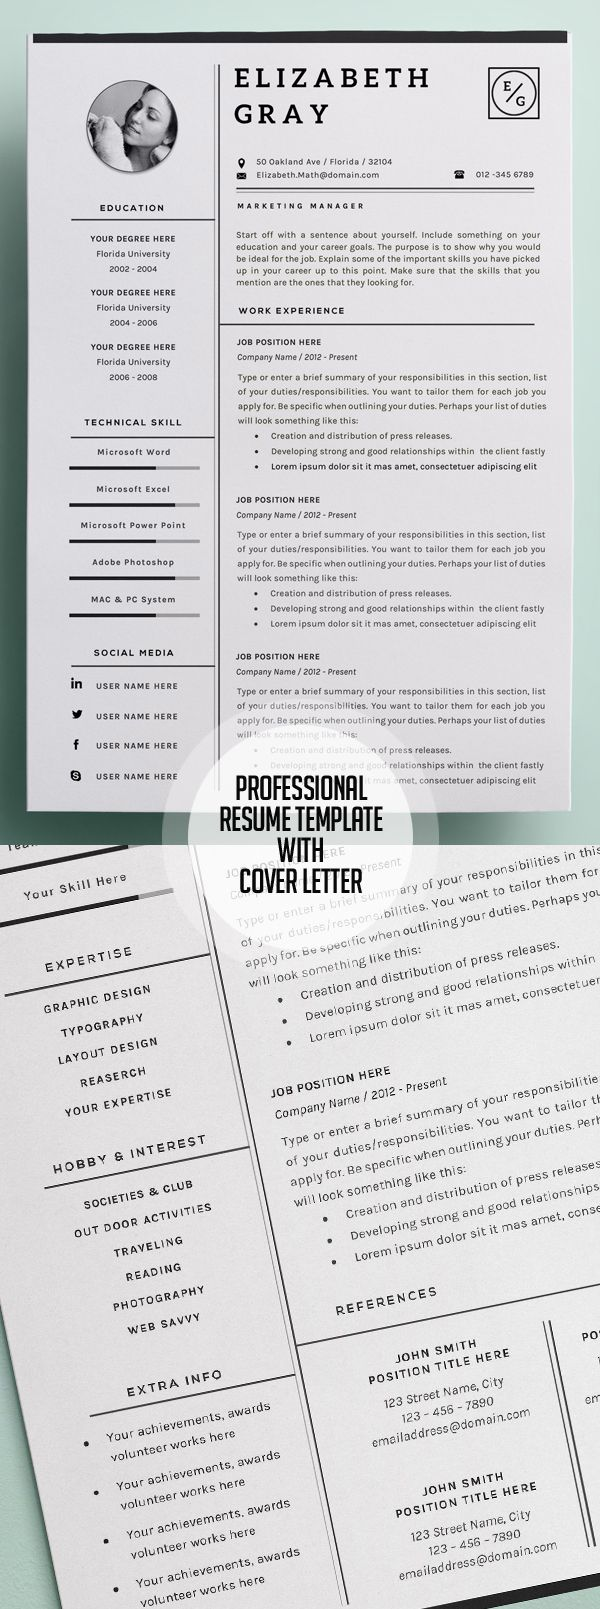 best ideas about modern resume template creative professional and modern resume template page cover cvtemplate